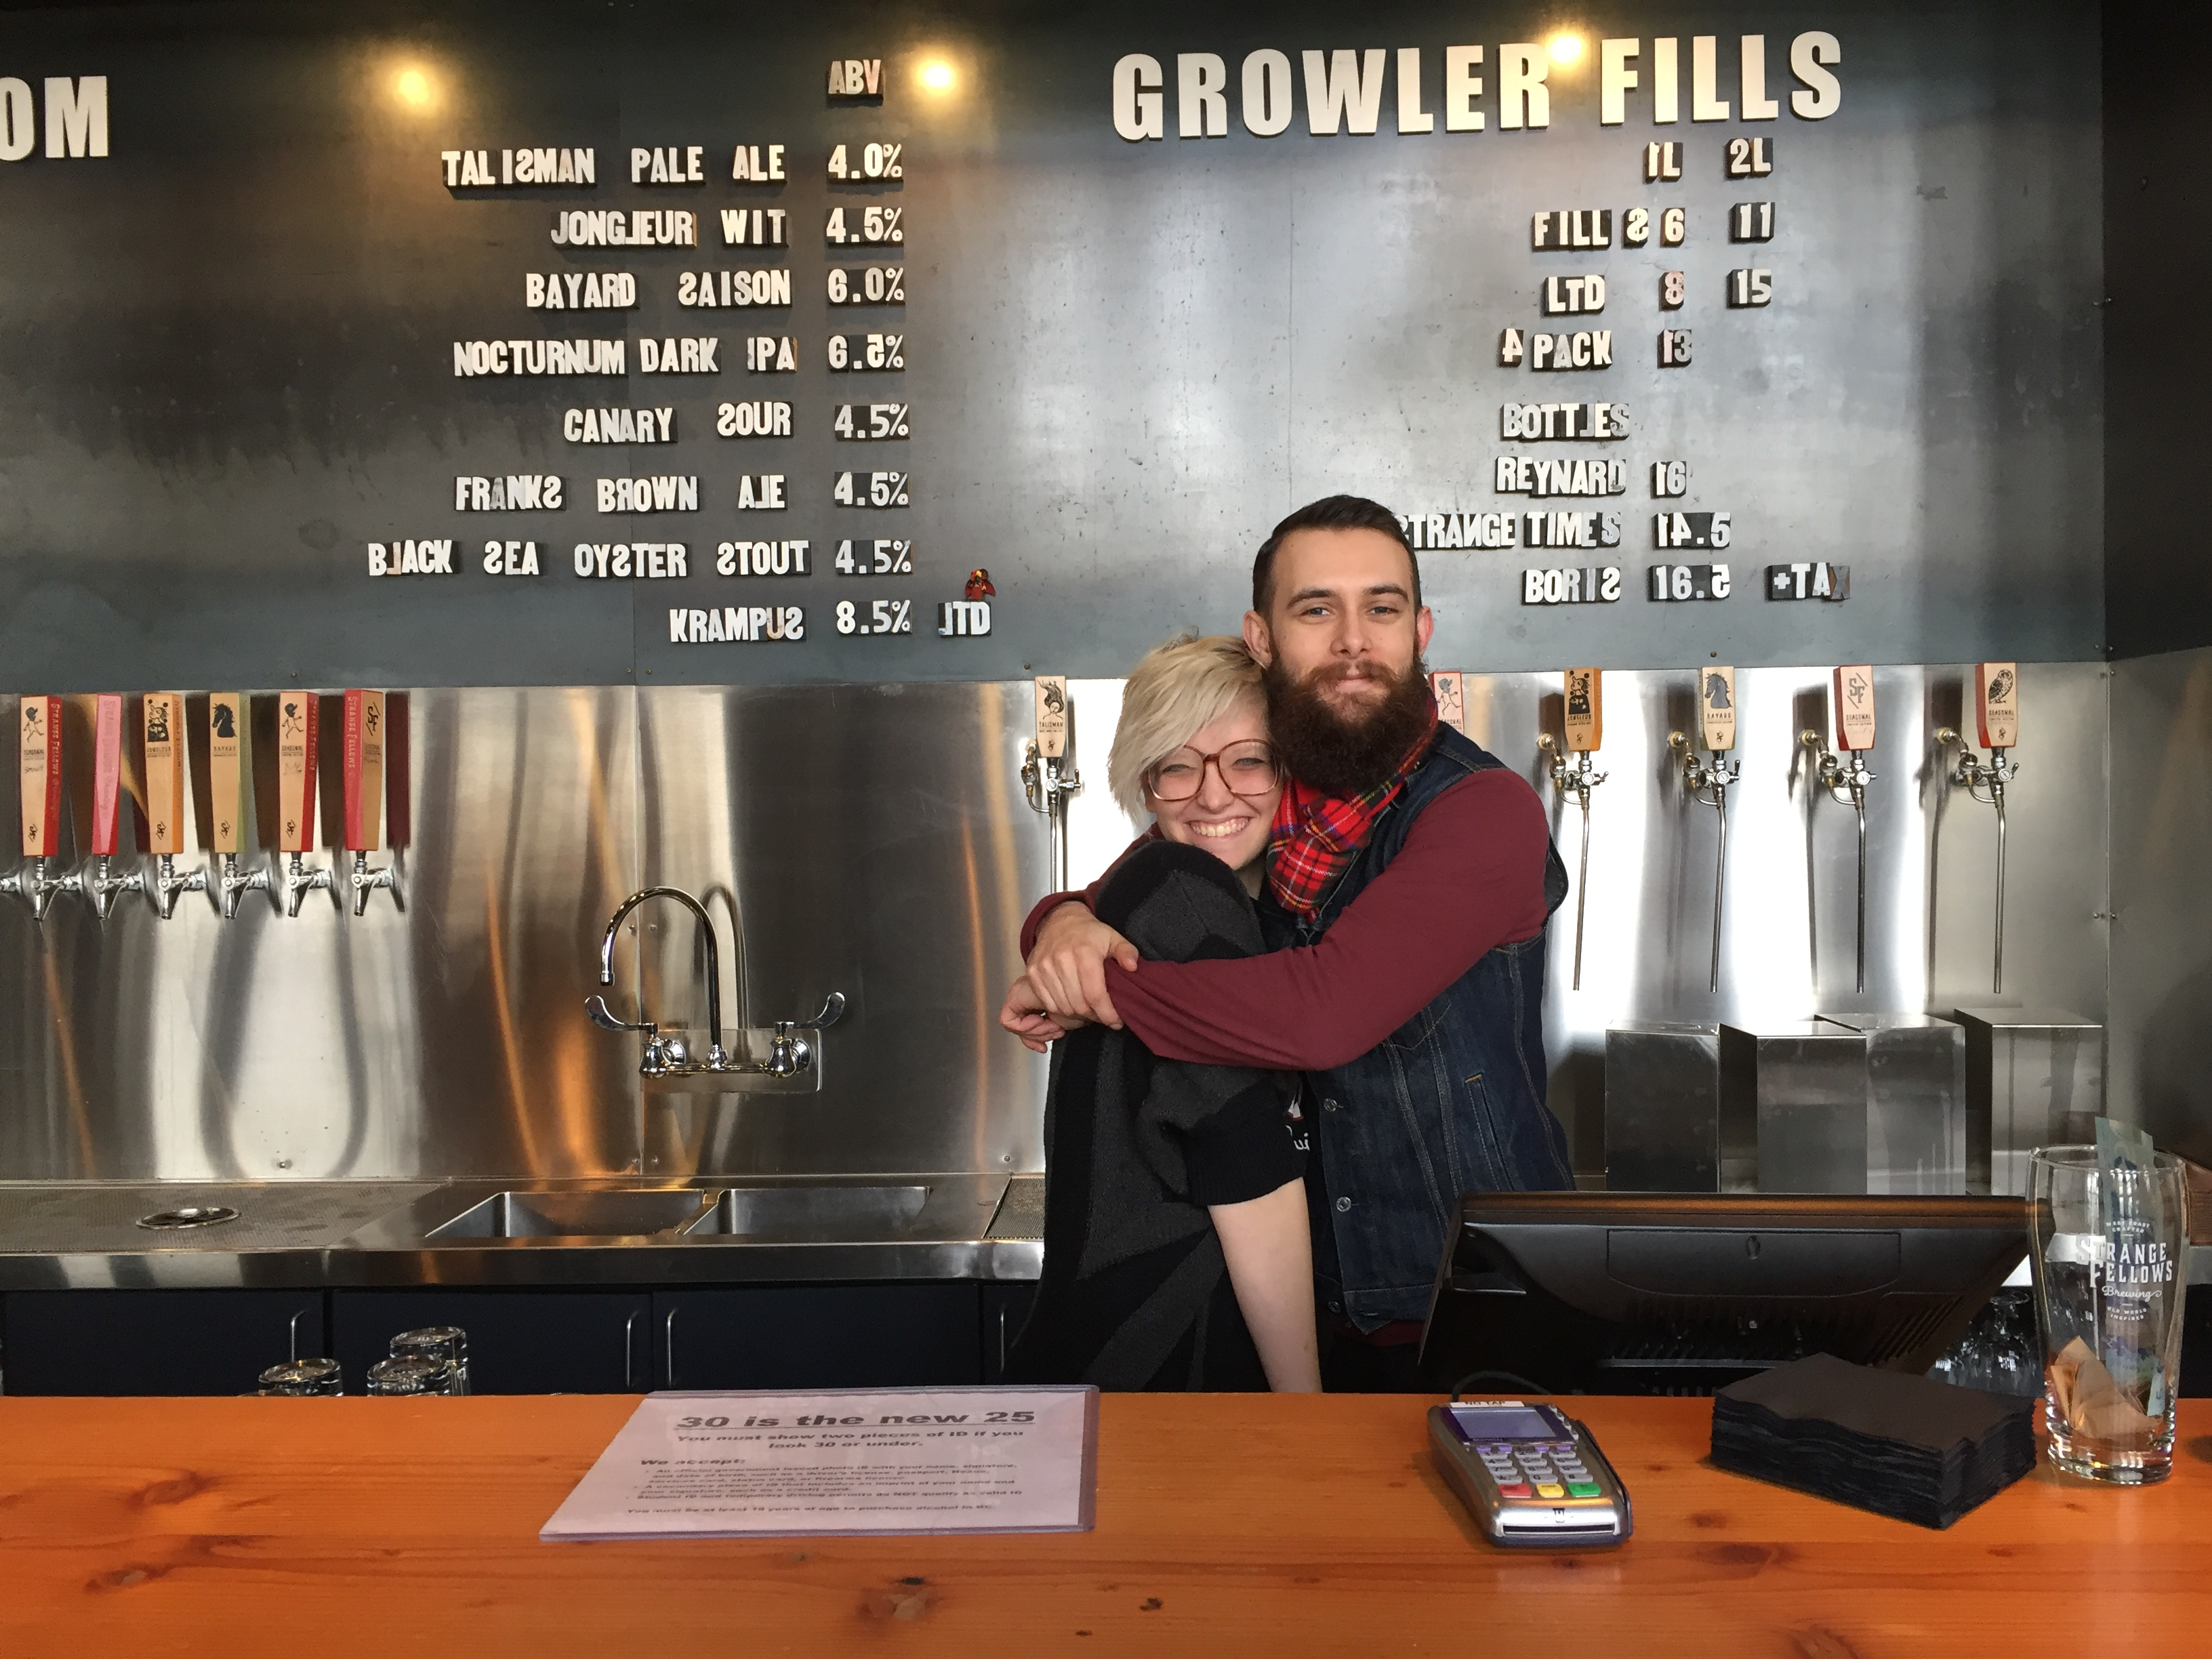 Holiday Staff Party Ideas - Vancouver Brewery Tours - Brewery Staff